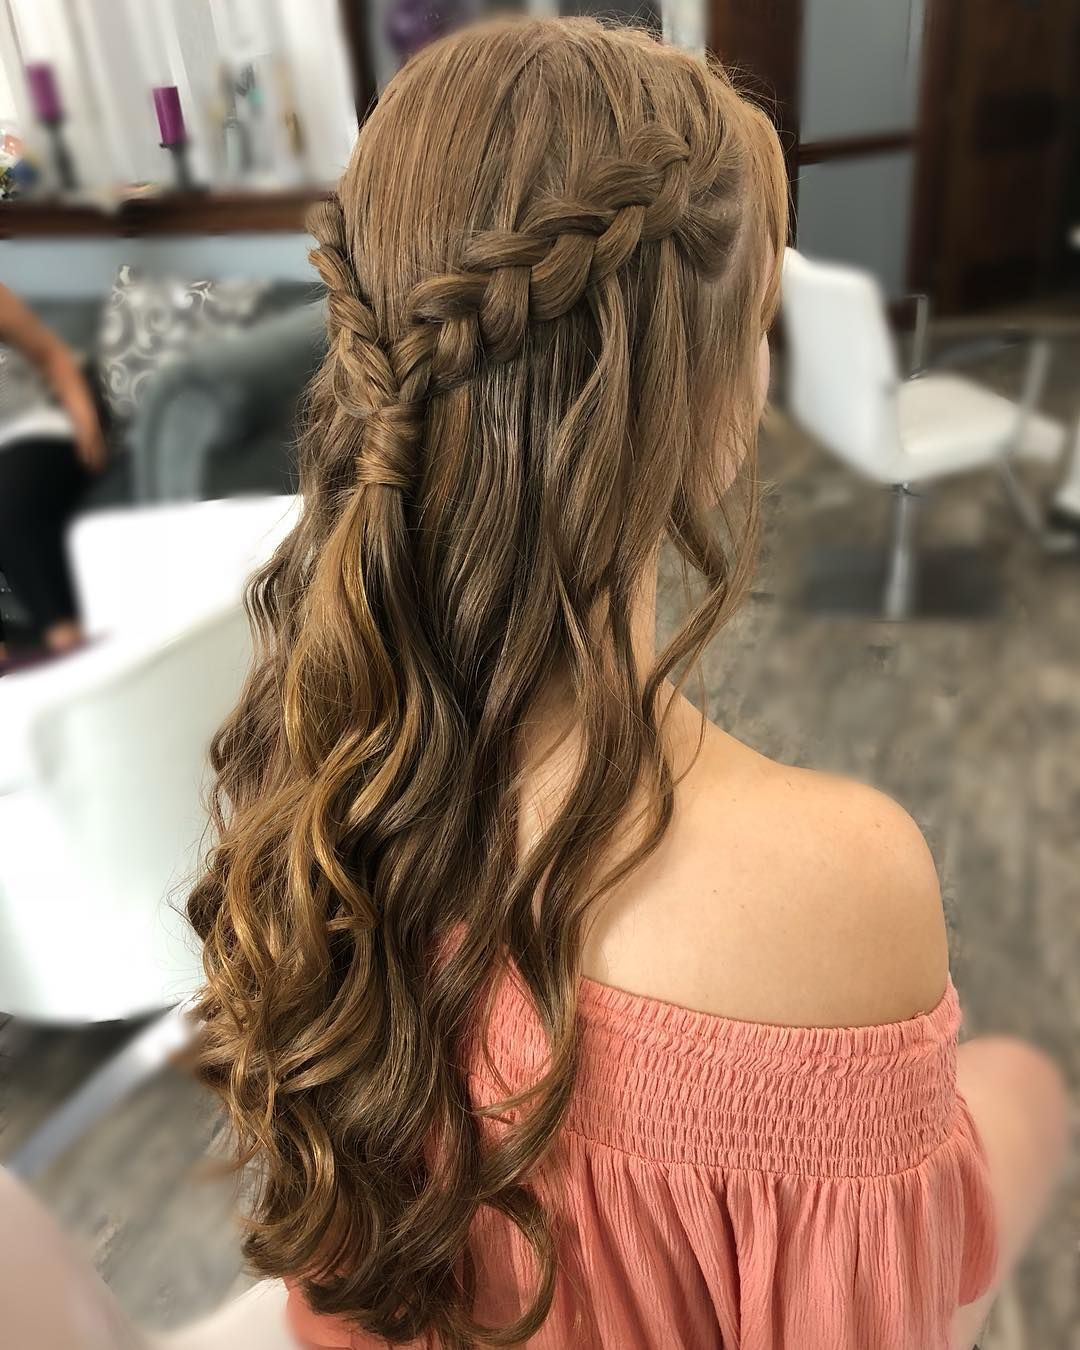 Hairstyles Are The Priority Of A Woman So Here Are 25 Stunning Prom Hairstyles Collection Thick Hair Styles Short Wedding Hair Prom Hairstyles For Short Hair